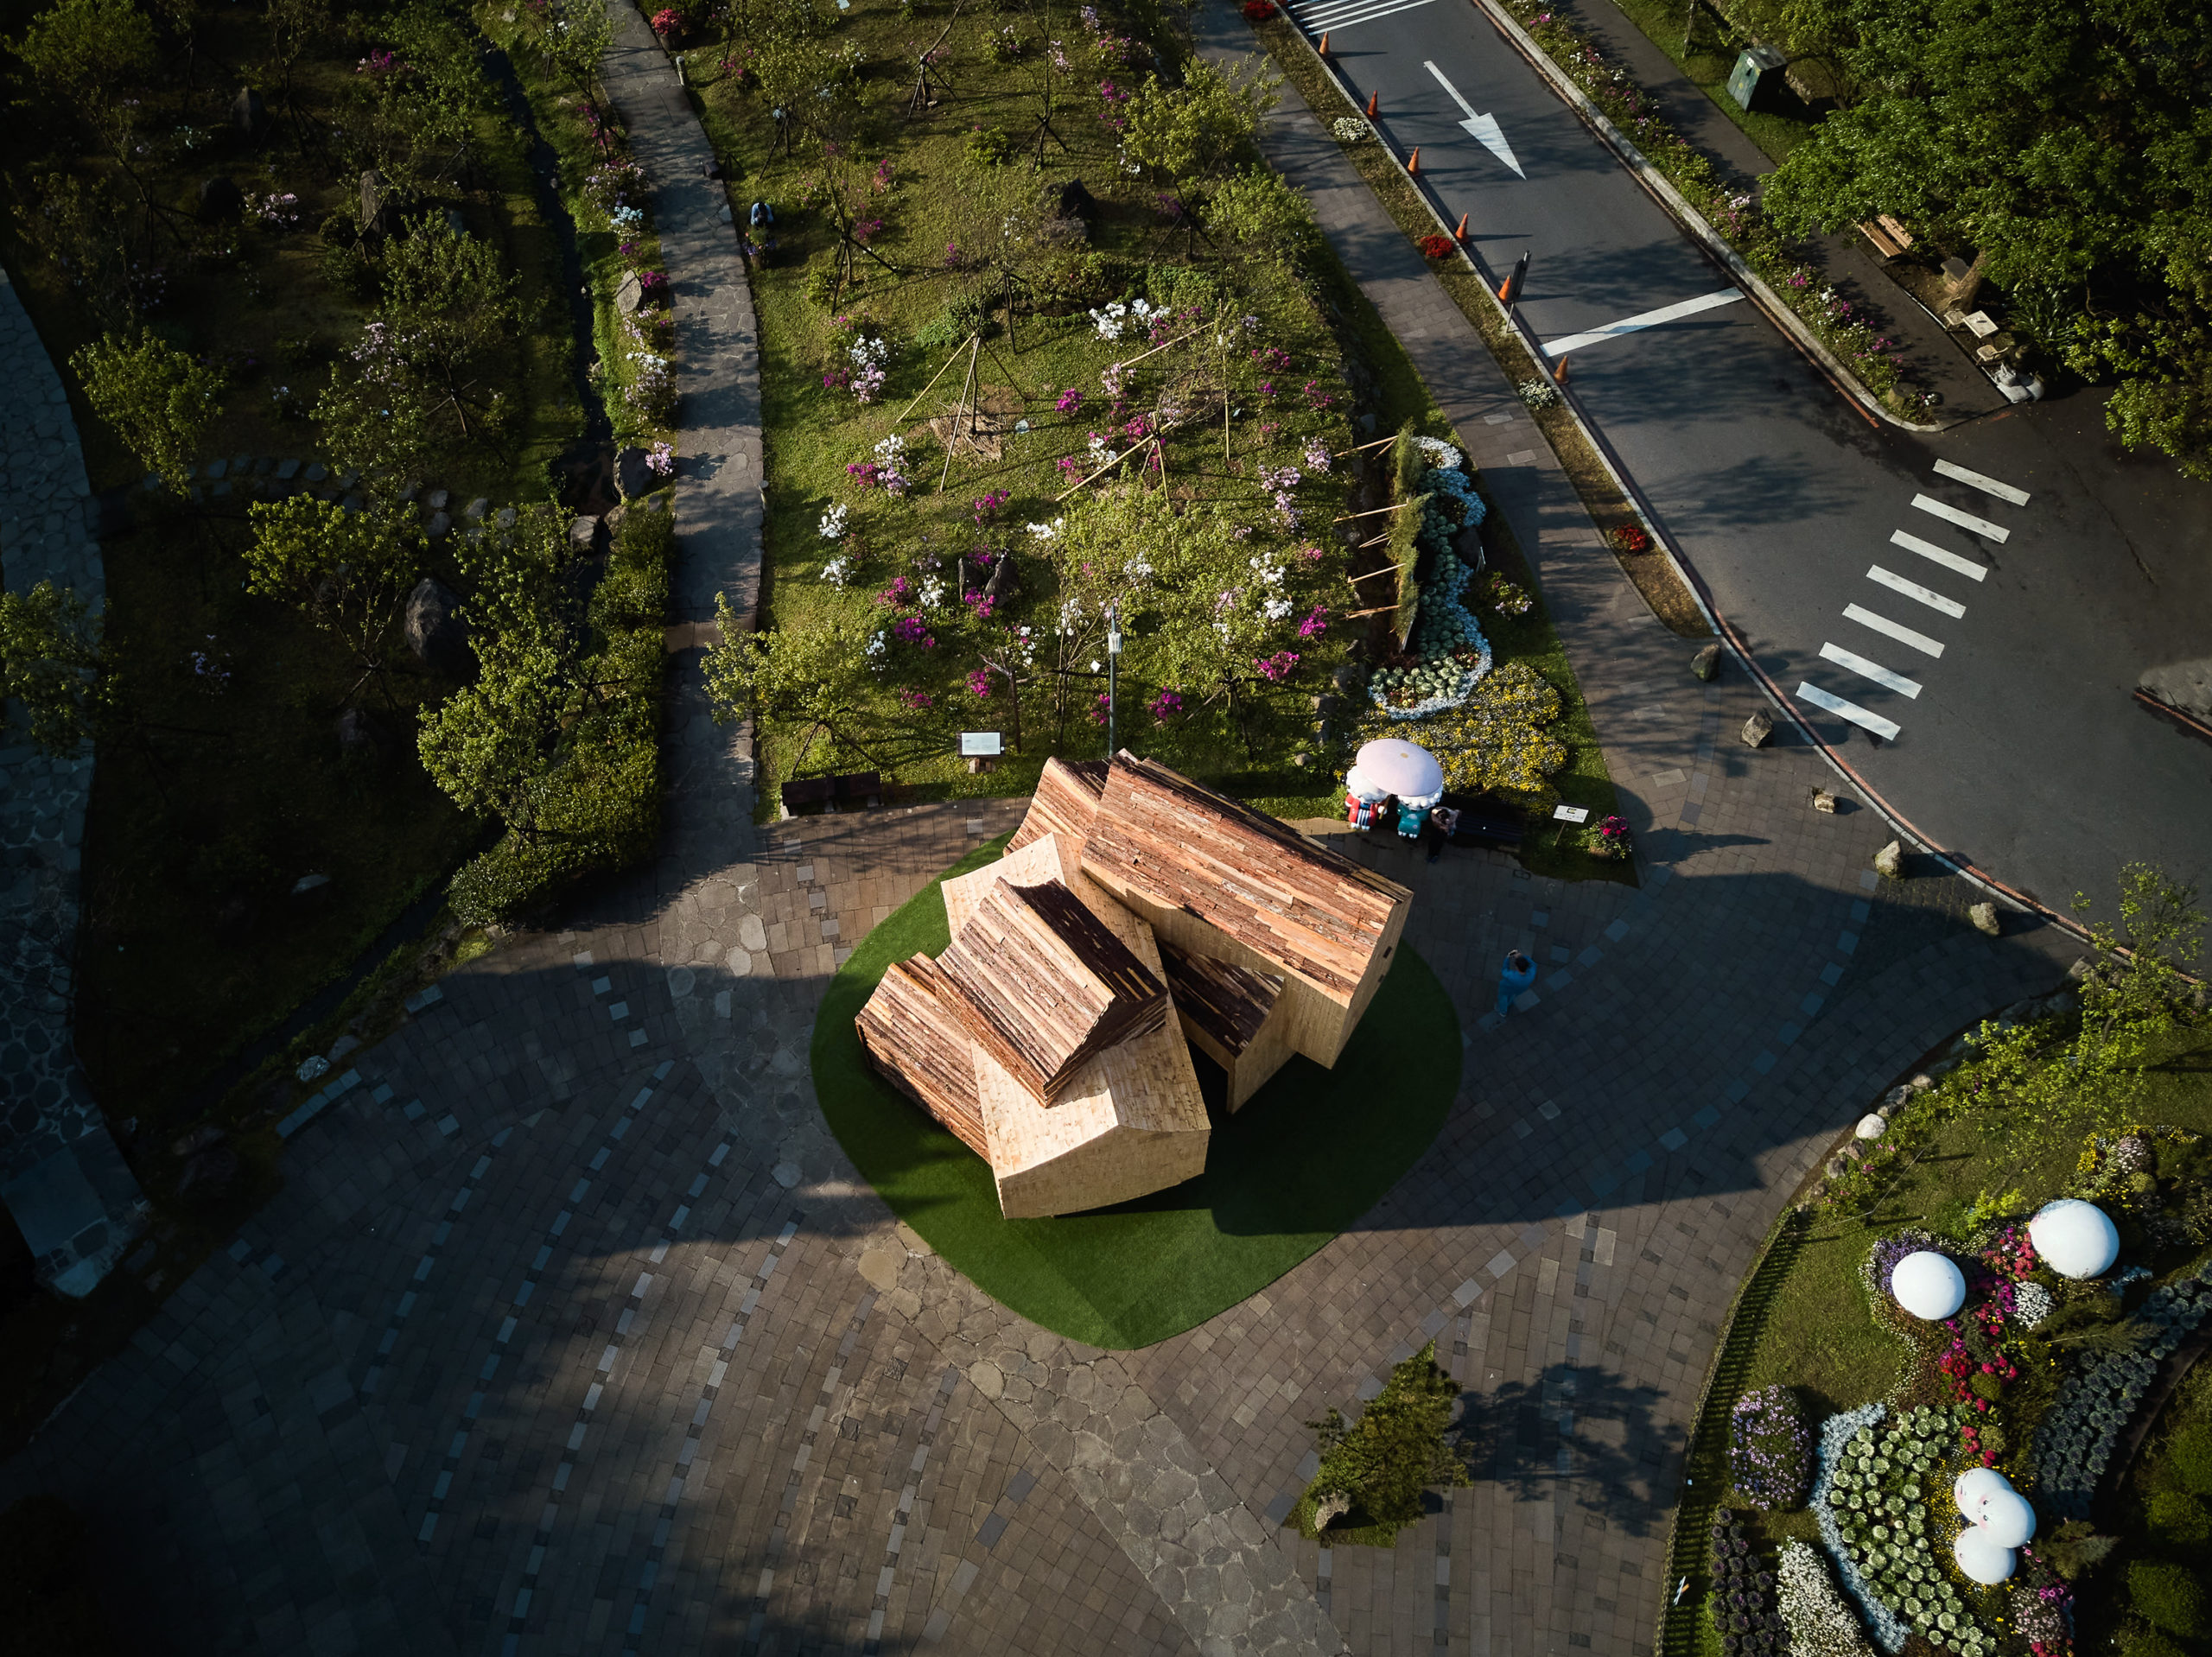 Boolean Birdhouse by Phoebe Says Wow Architects / PSW建築設計研究室